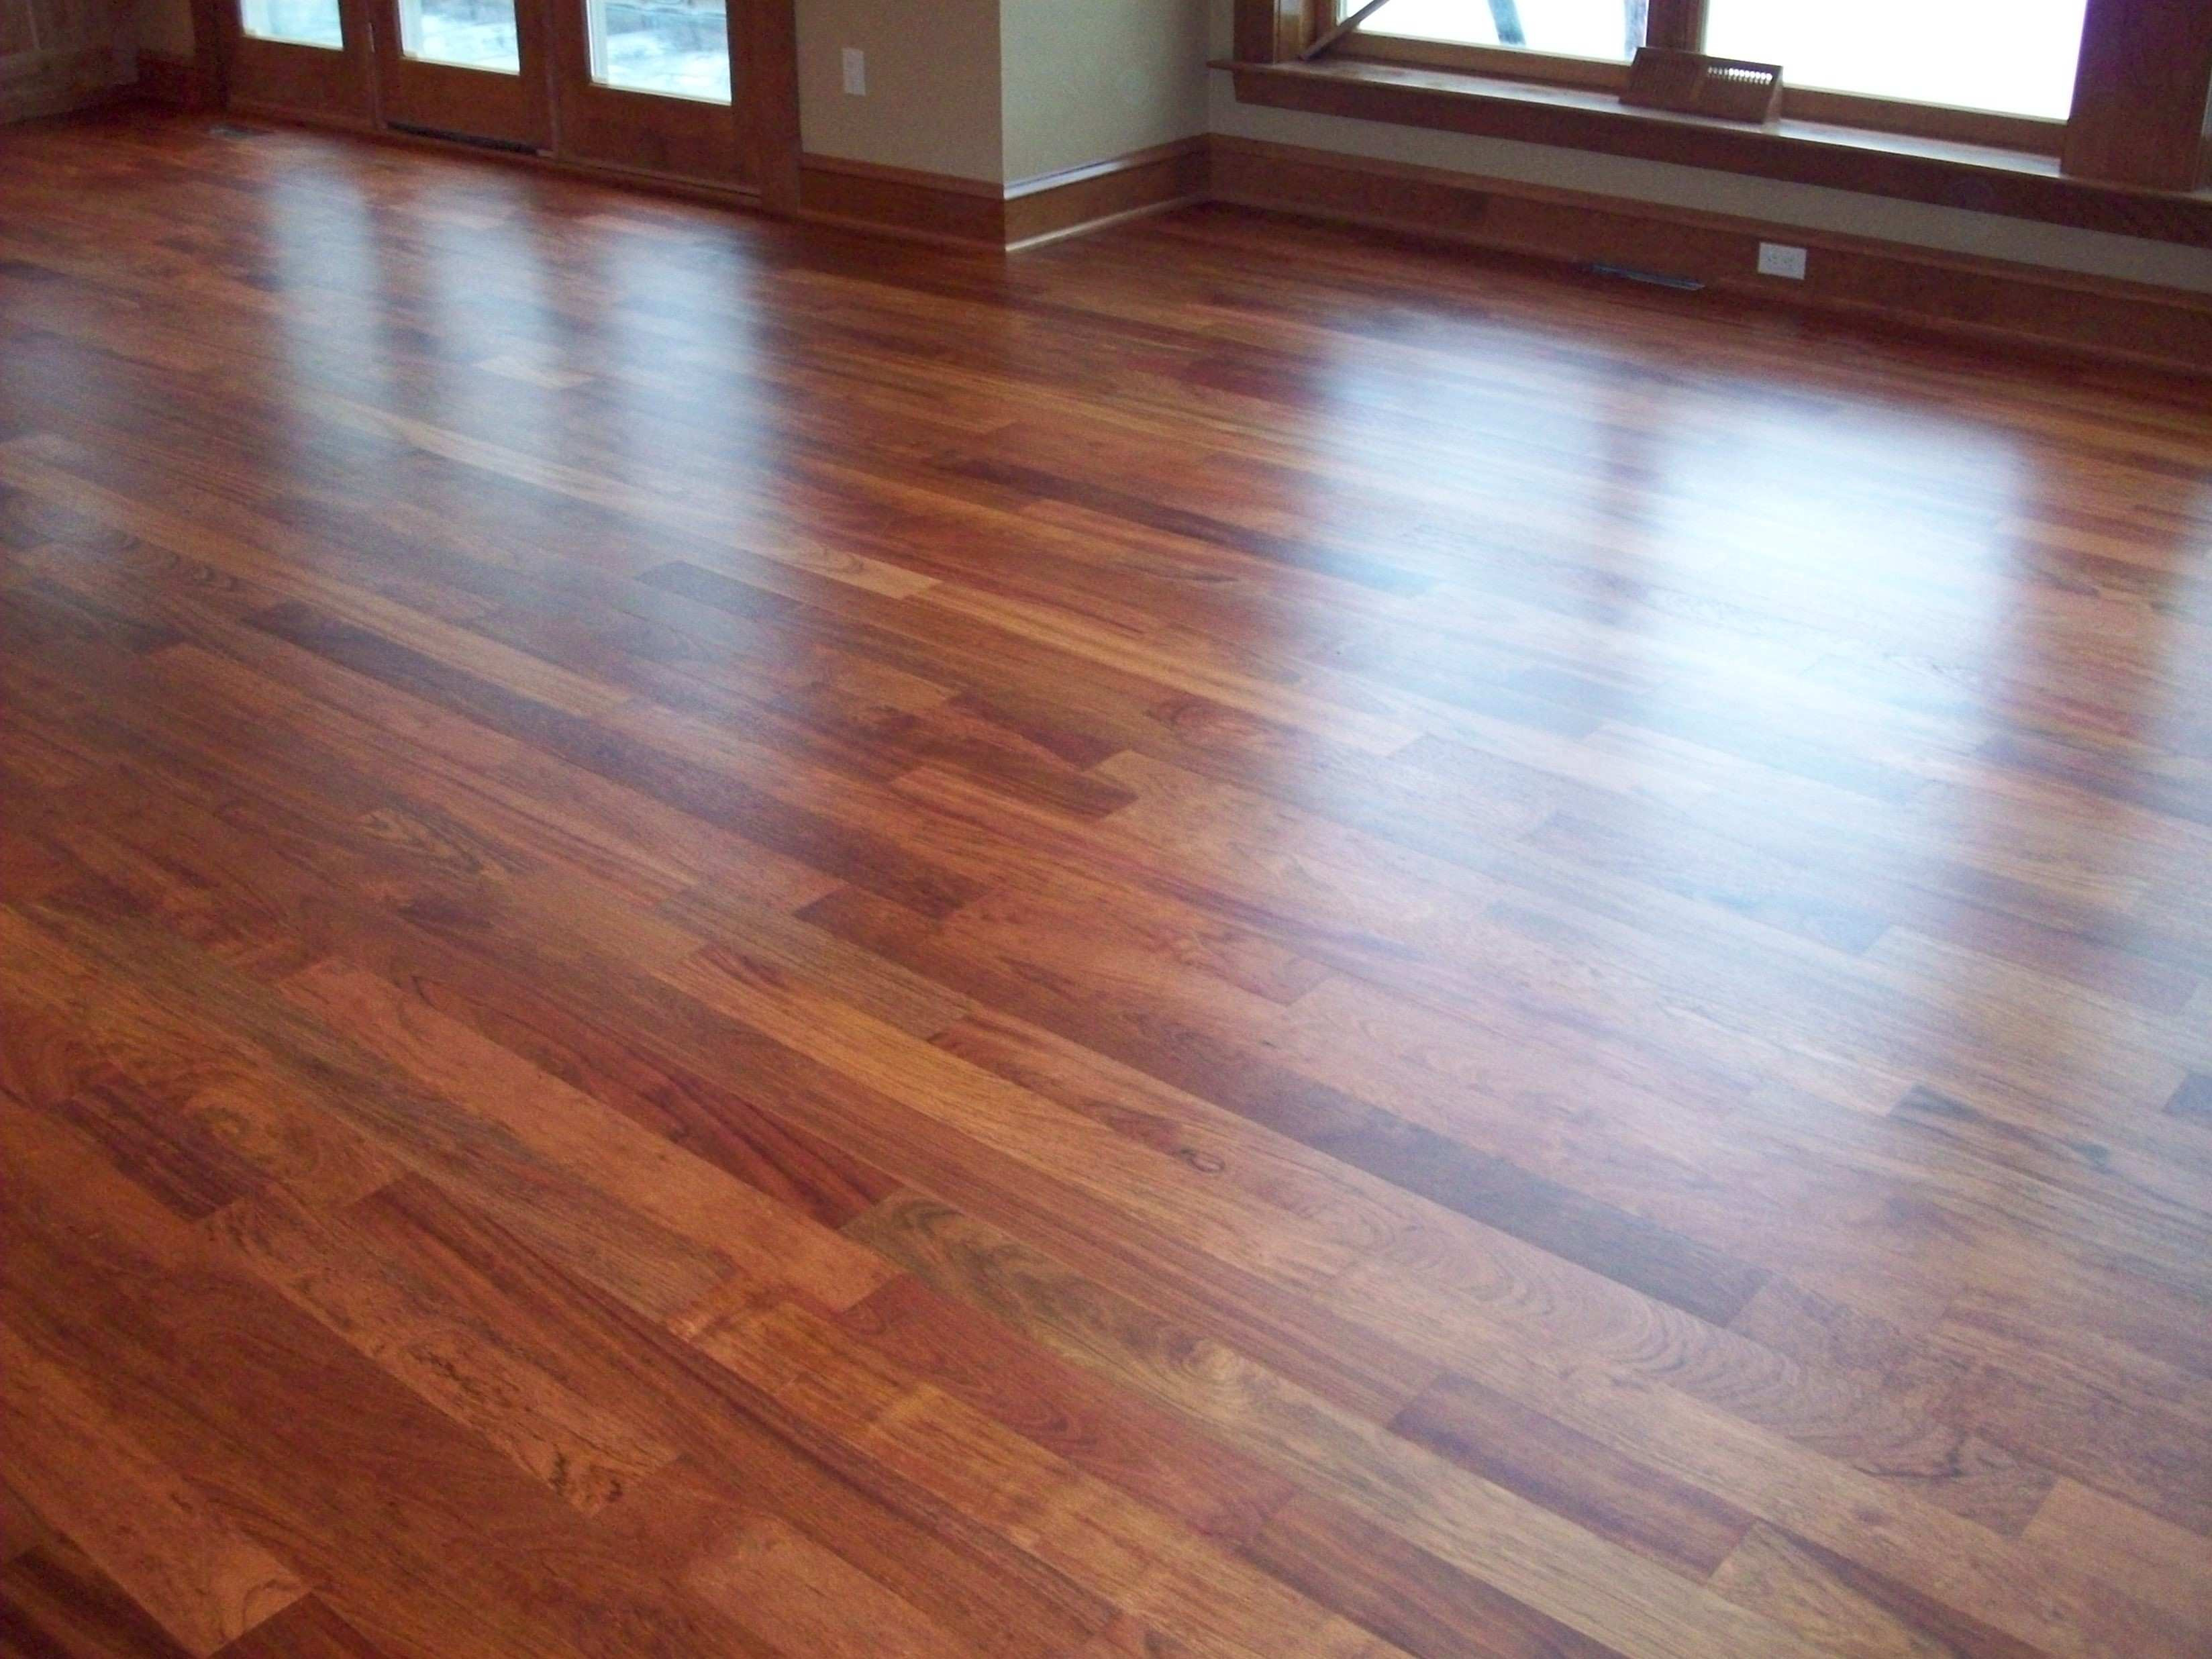 wholesale hardwood flooring near me of 30 awesome what to clean laminate floors with swansonsfuneralhomes com within what to clean laminate floors with elegant engaging discount hardwood flooring 5 where to buy inspirational